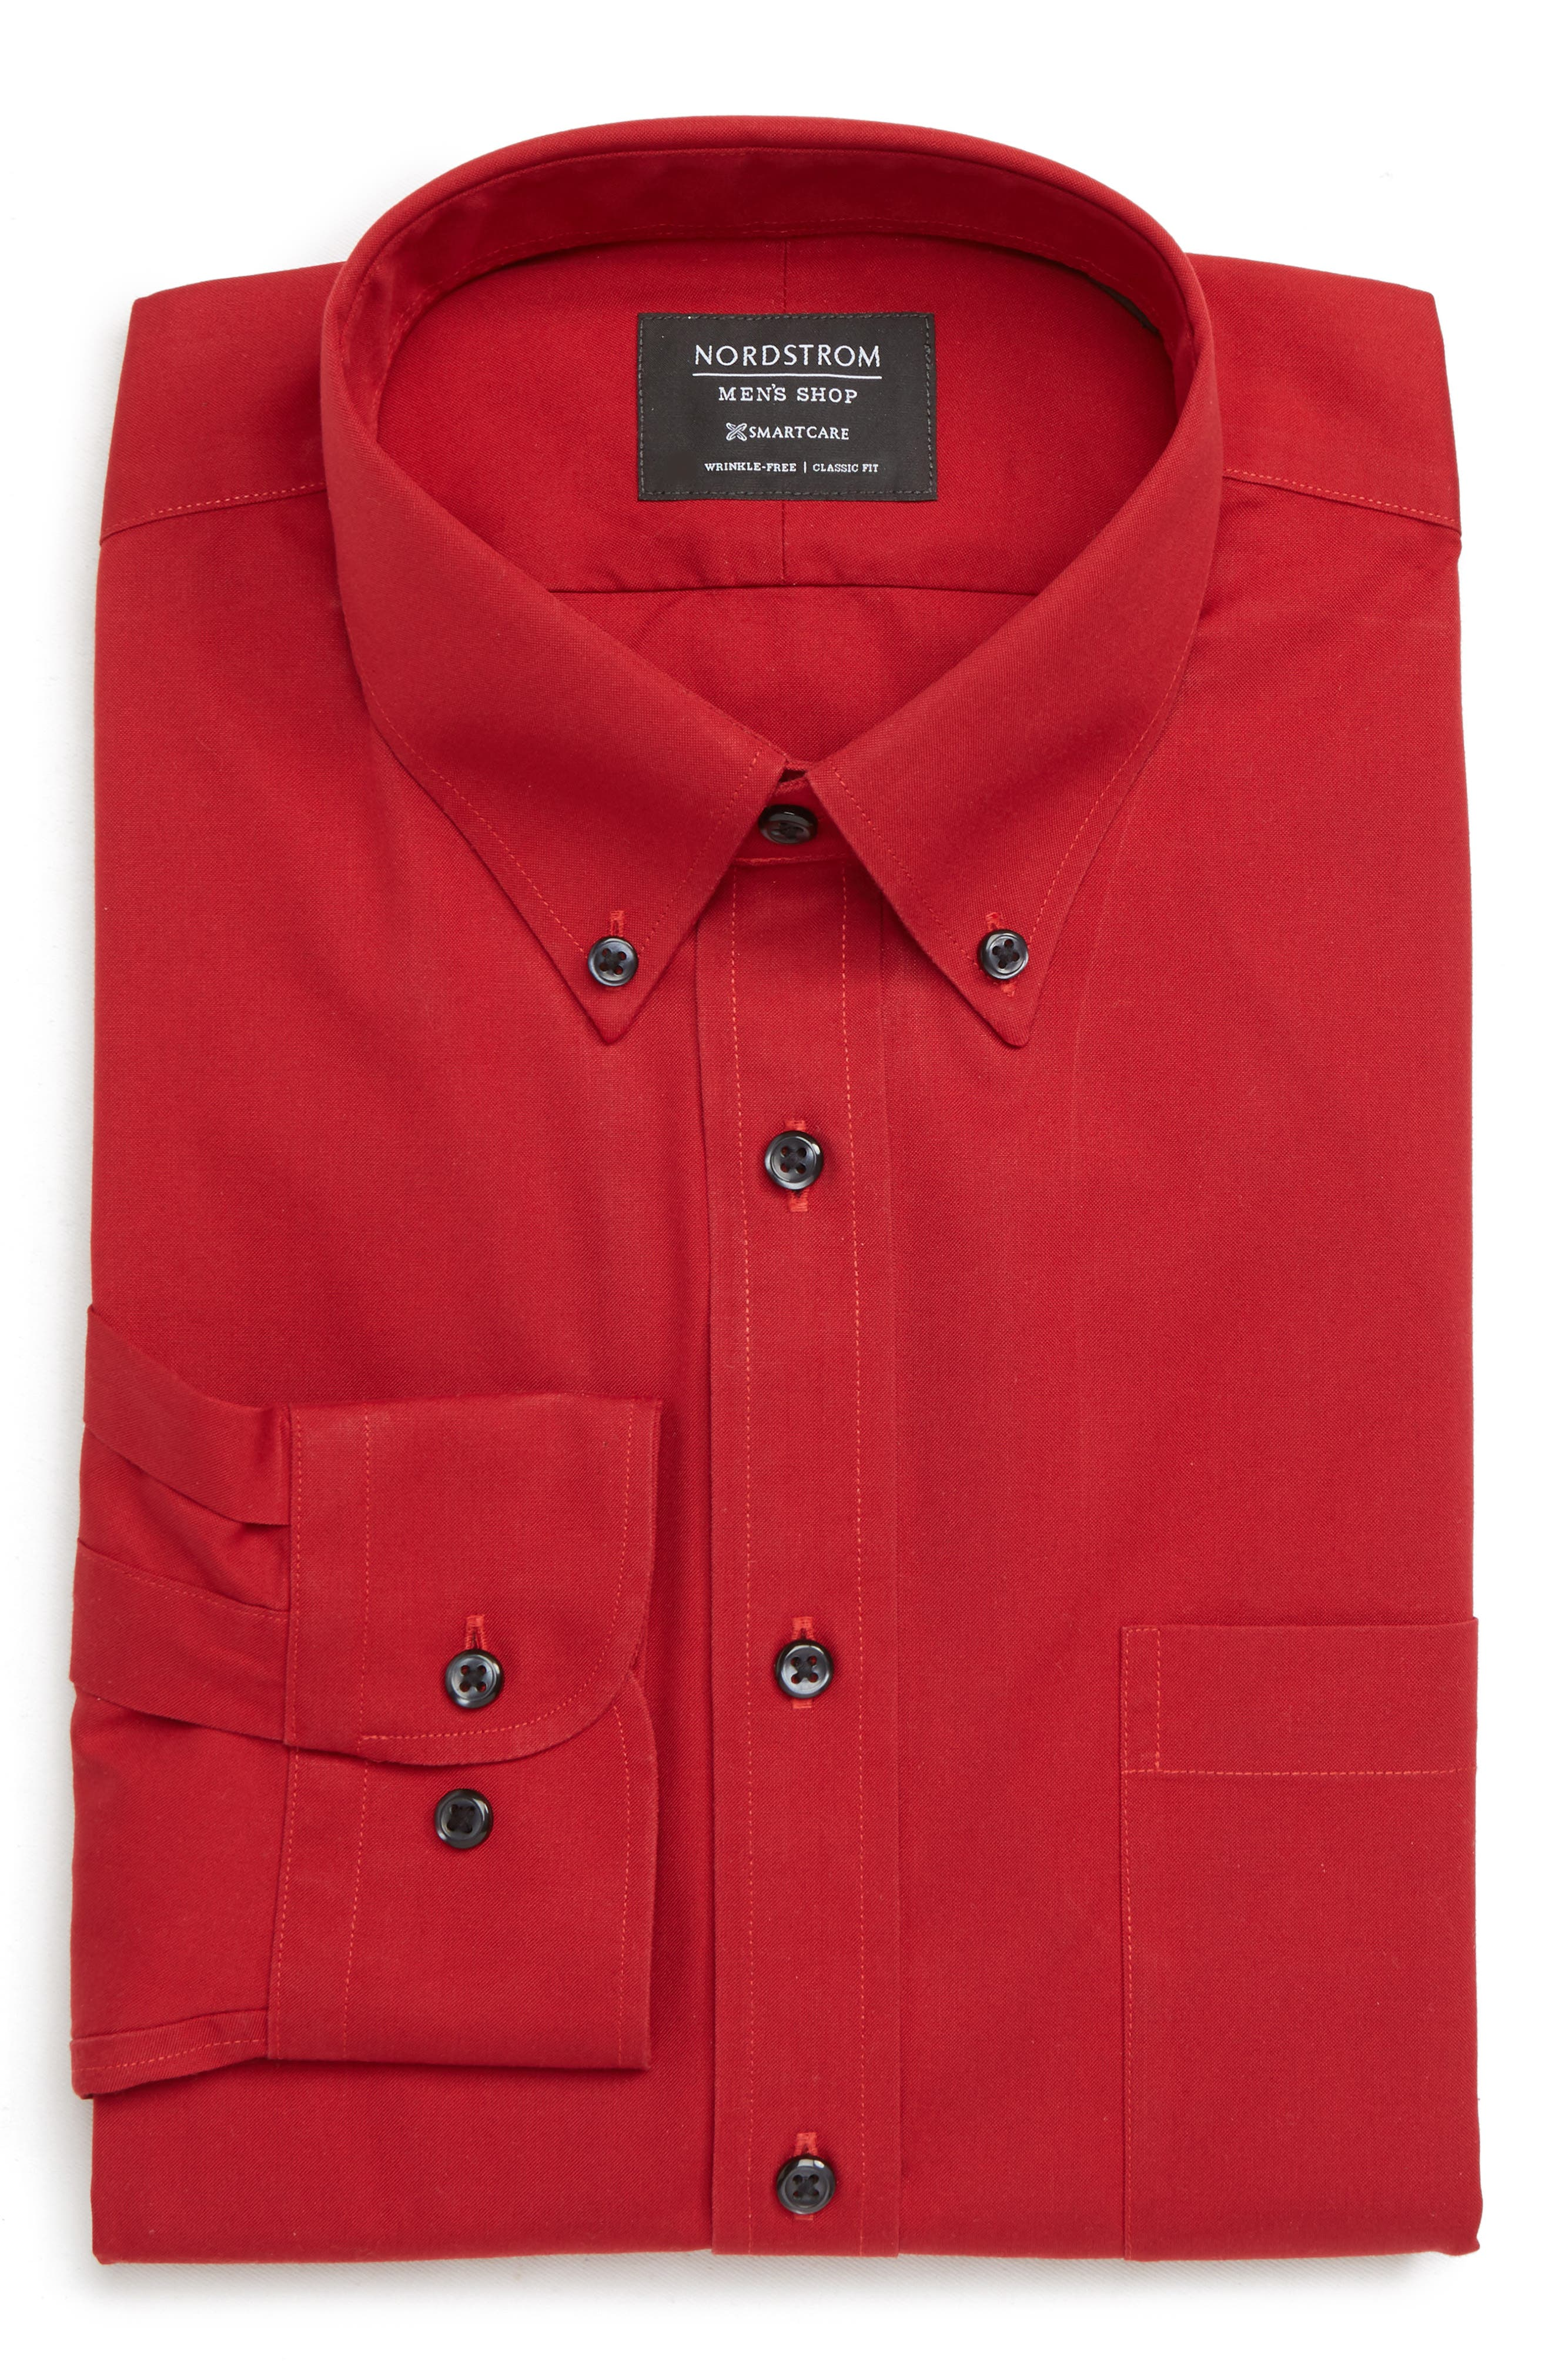 Nordstrom Shop Smartcare(TM) Classic Fit Dress Shirt, Red